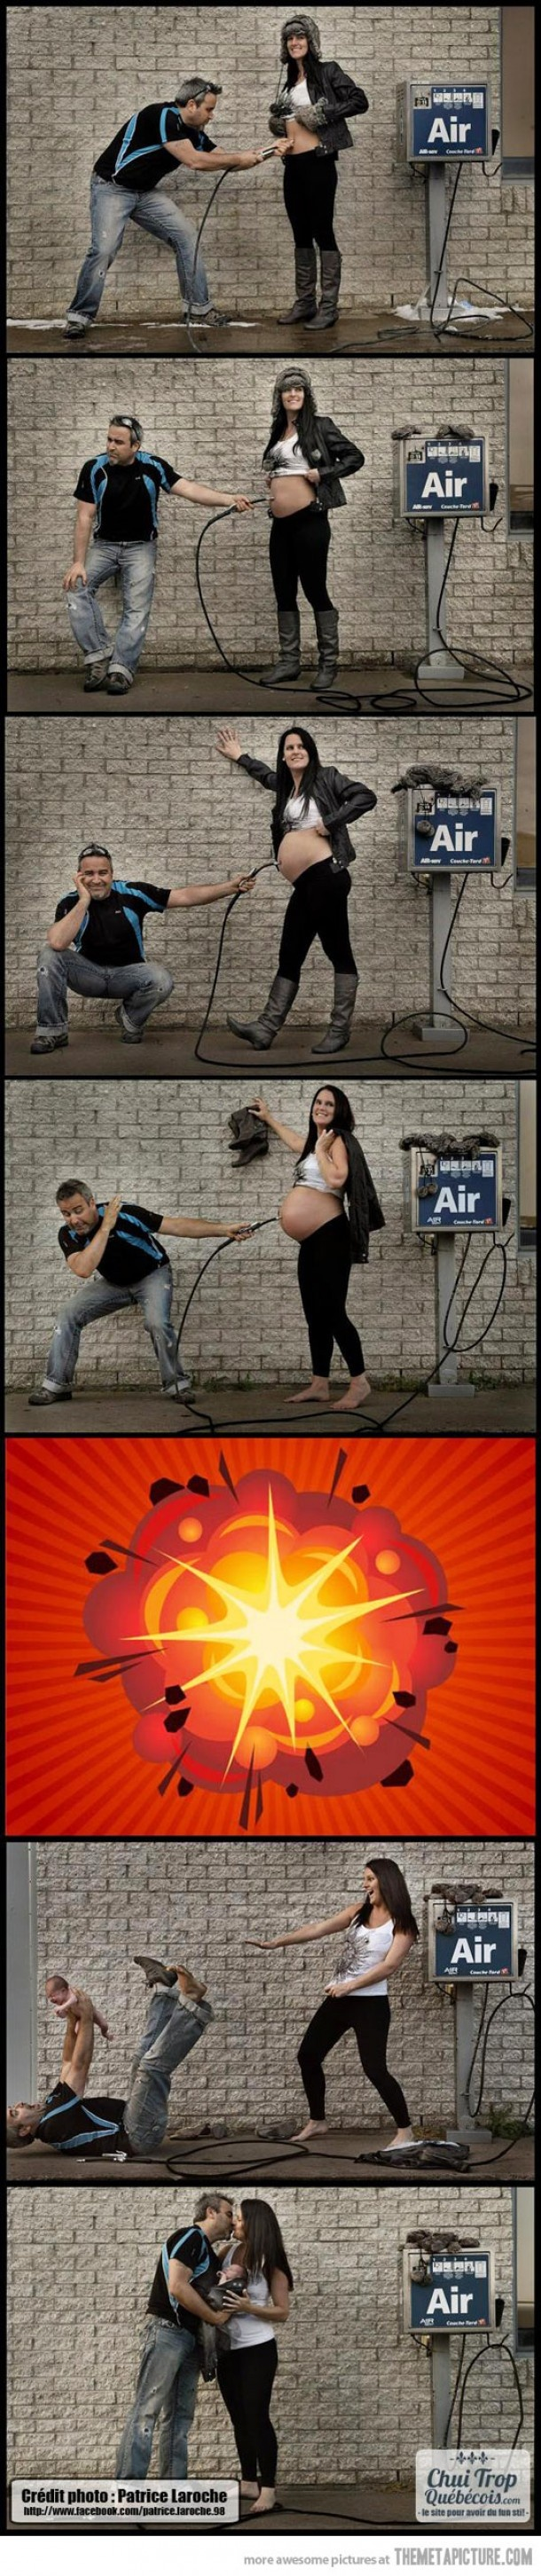 17 best images about femme enceinte on pinterest belly button baby kiss and maternity photography. Black Bedroom Furniture Sets. Home Design Ideas